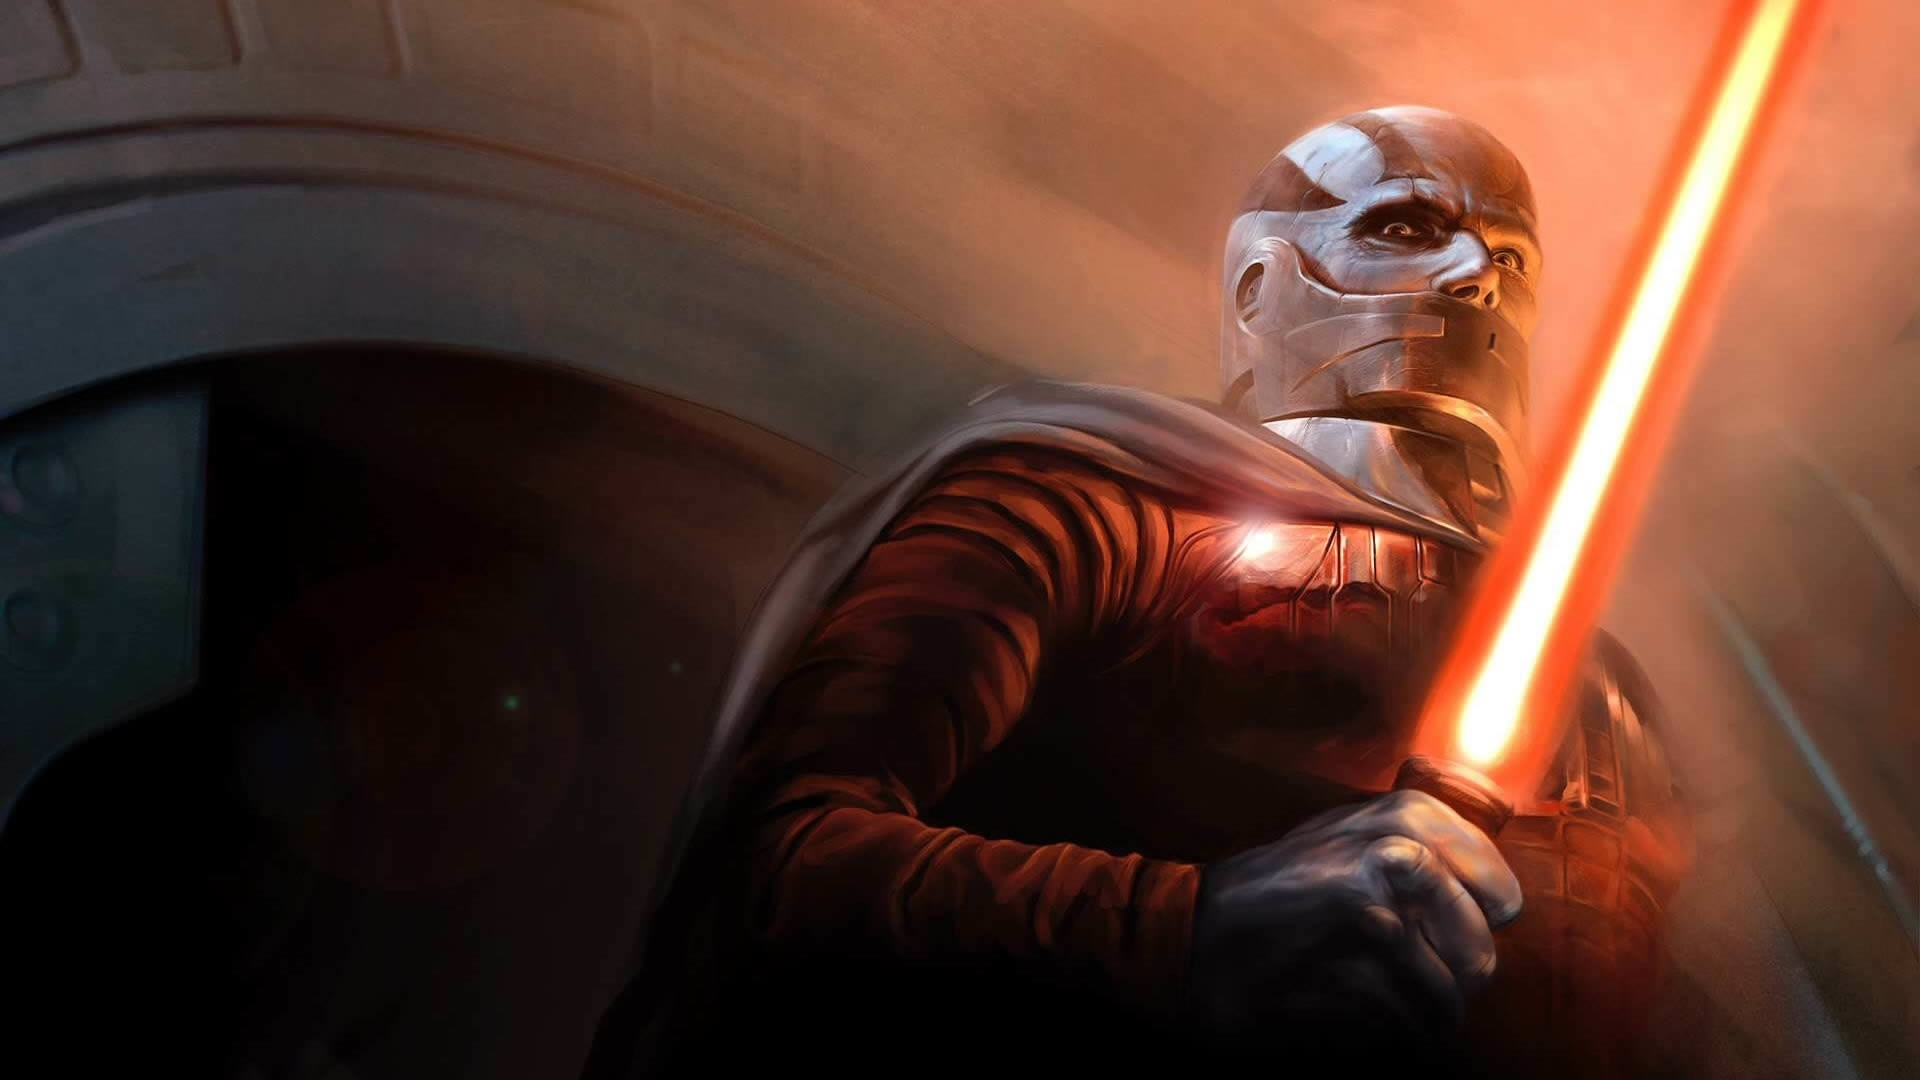 1920x1080 Preview wallpaper star wars the old republic, bald, character, lightsaber,  cloak